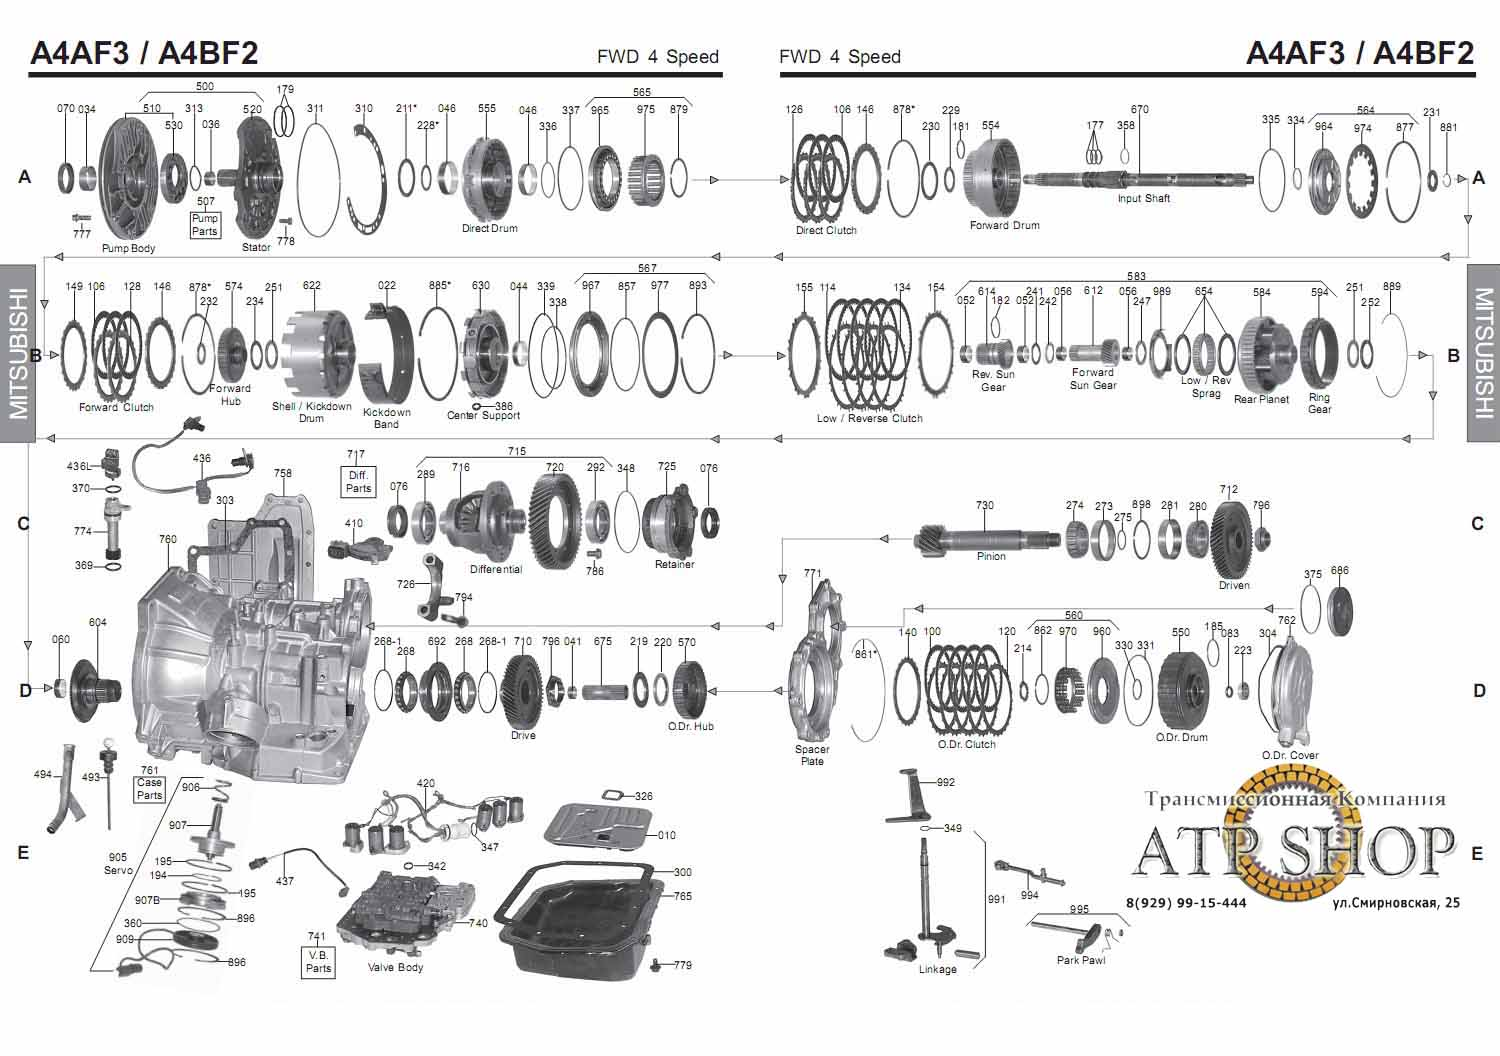 Diagram For Manual Transmission Hyundai Elantra likewise 2002 Dodge Caravan Stereo Wiring Diagram in addition Hyundai Sonata Radio Wiring Diagram in addition Hyundai Santa Fe 2 7 Engine Diagram besides Chevy Silverado Transmission Schematic. on santa fe transmission problems 2005